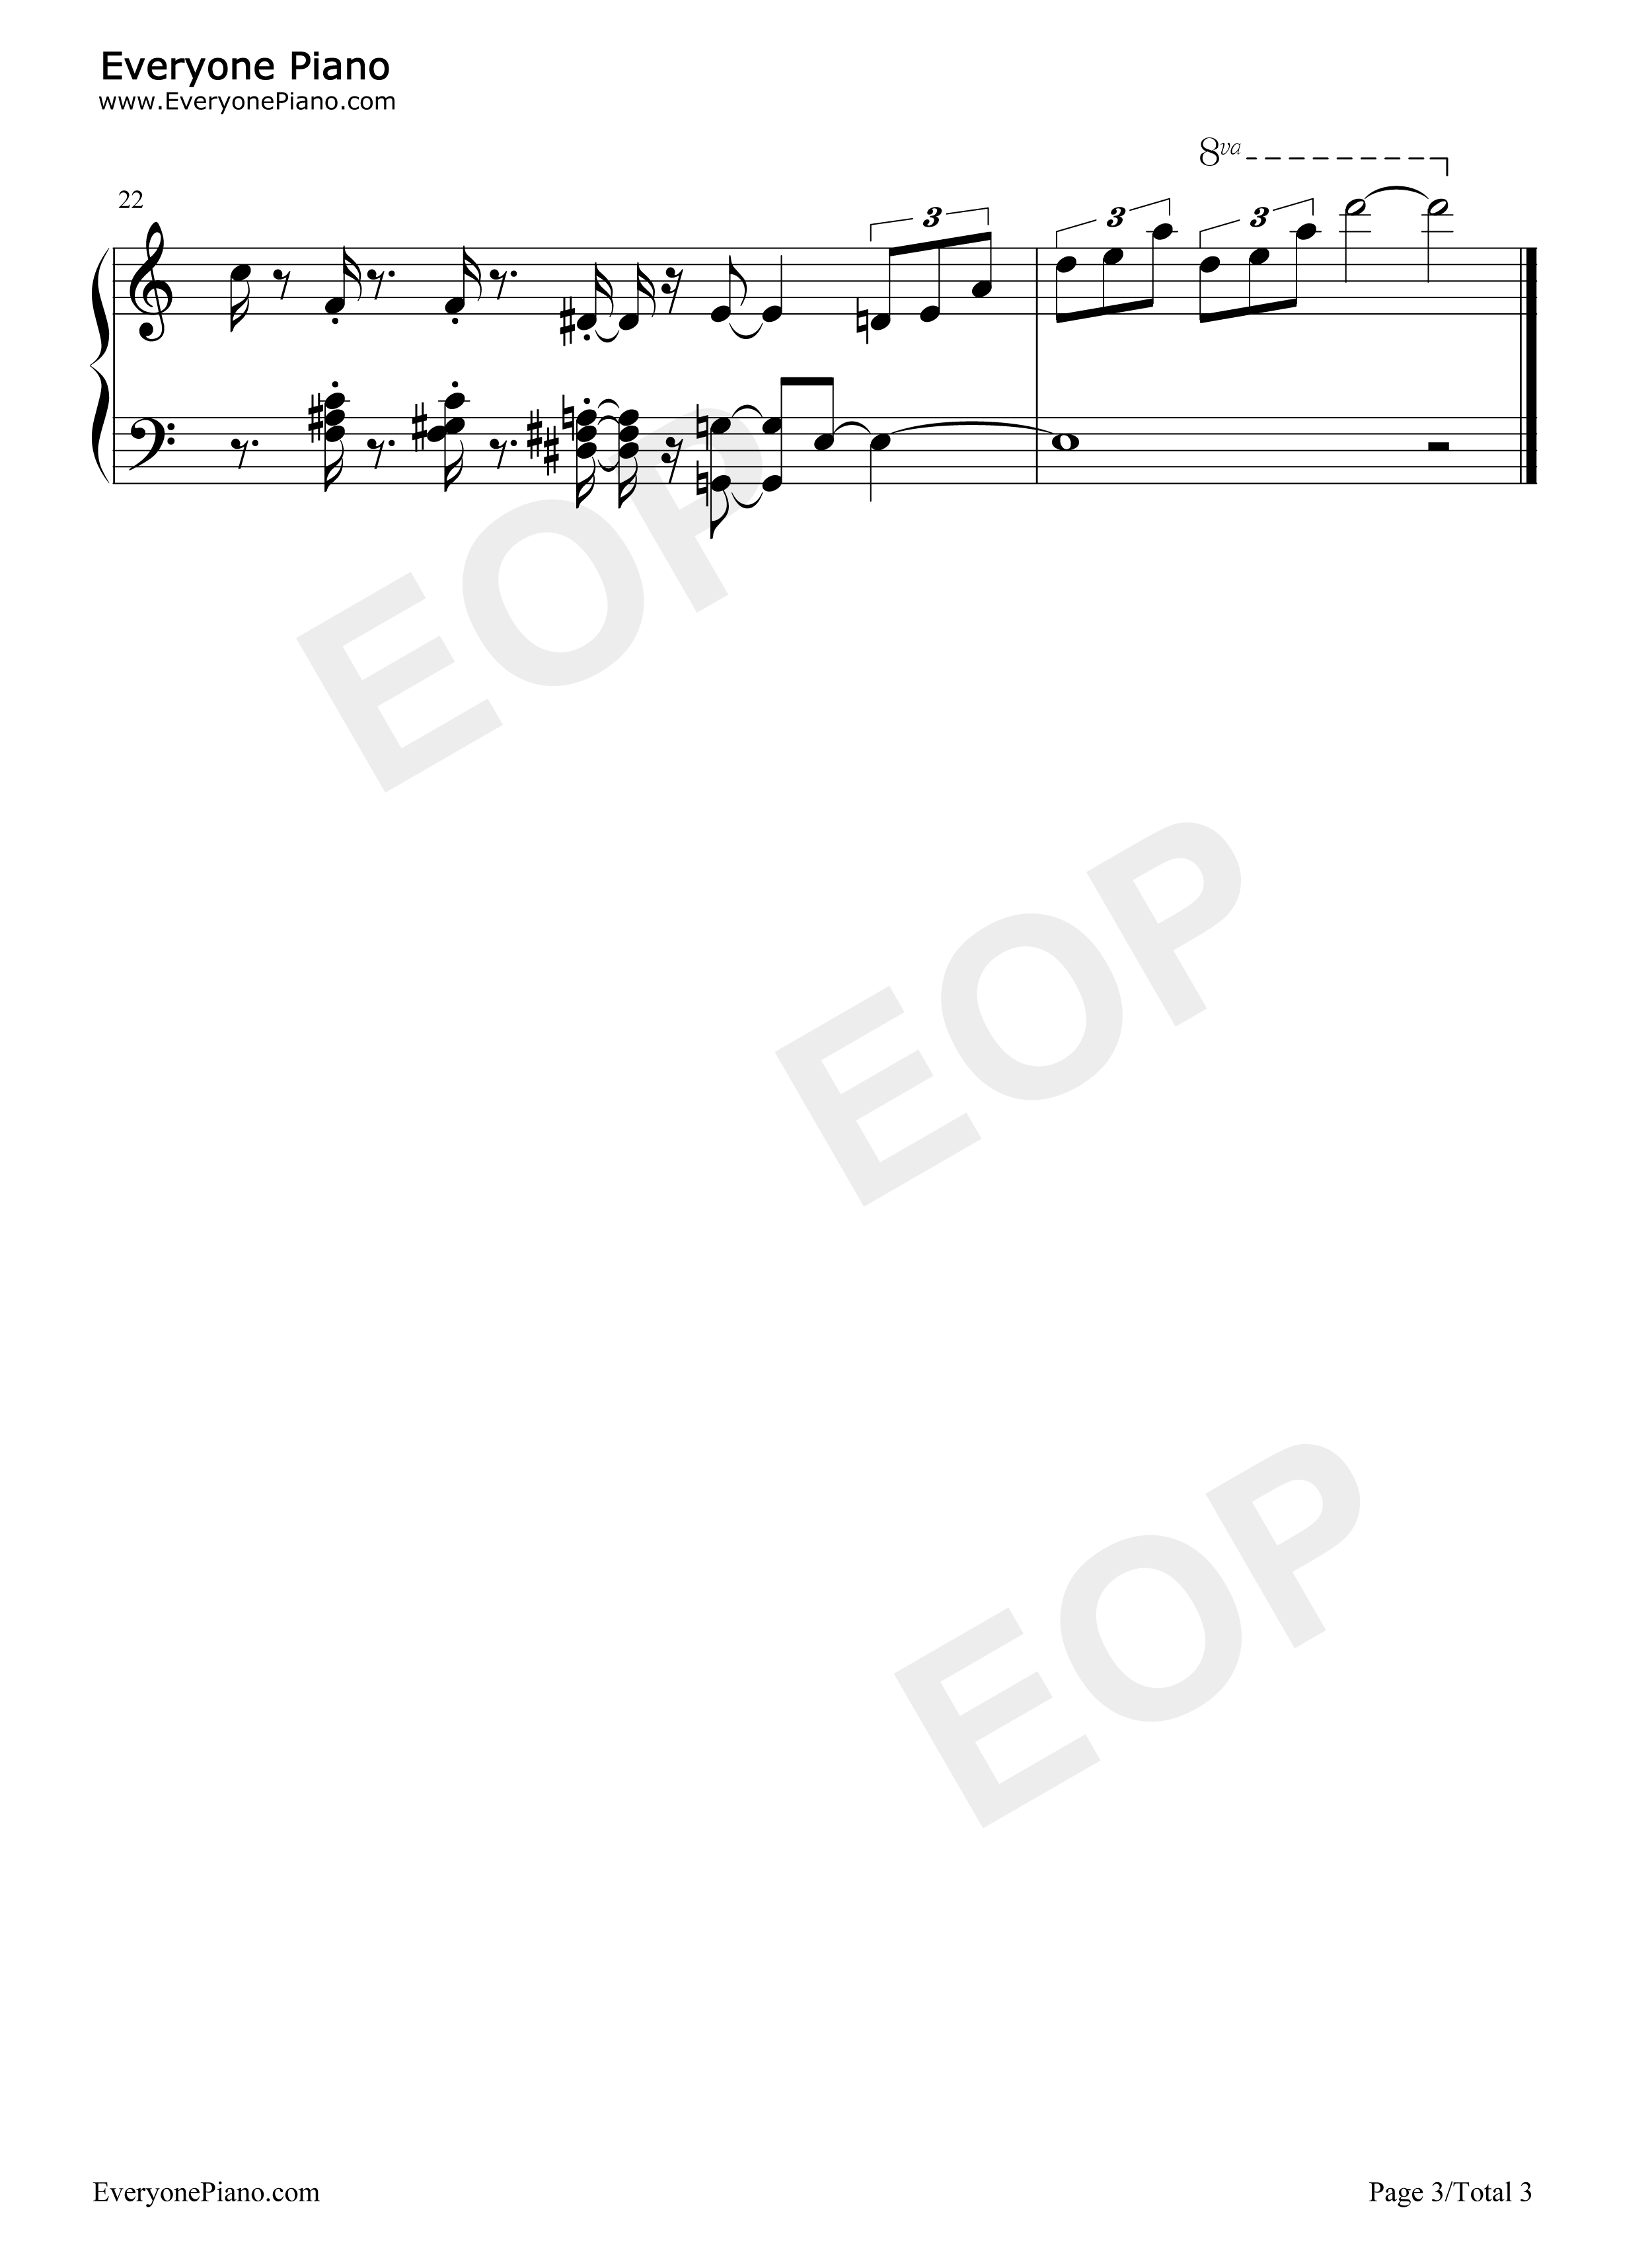 Fly me to the moon bart howard stave preview 3 free piano sheet listen now print sheet fly me to the moon bart howard stave preview 3 hexwebz Choice Image